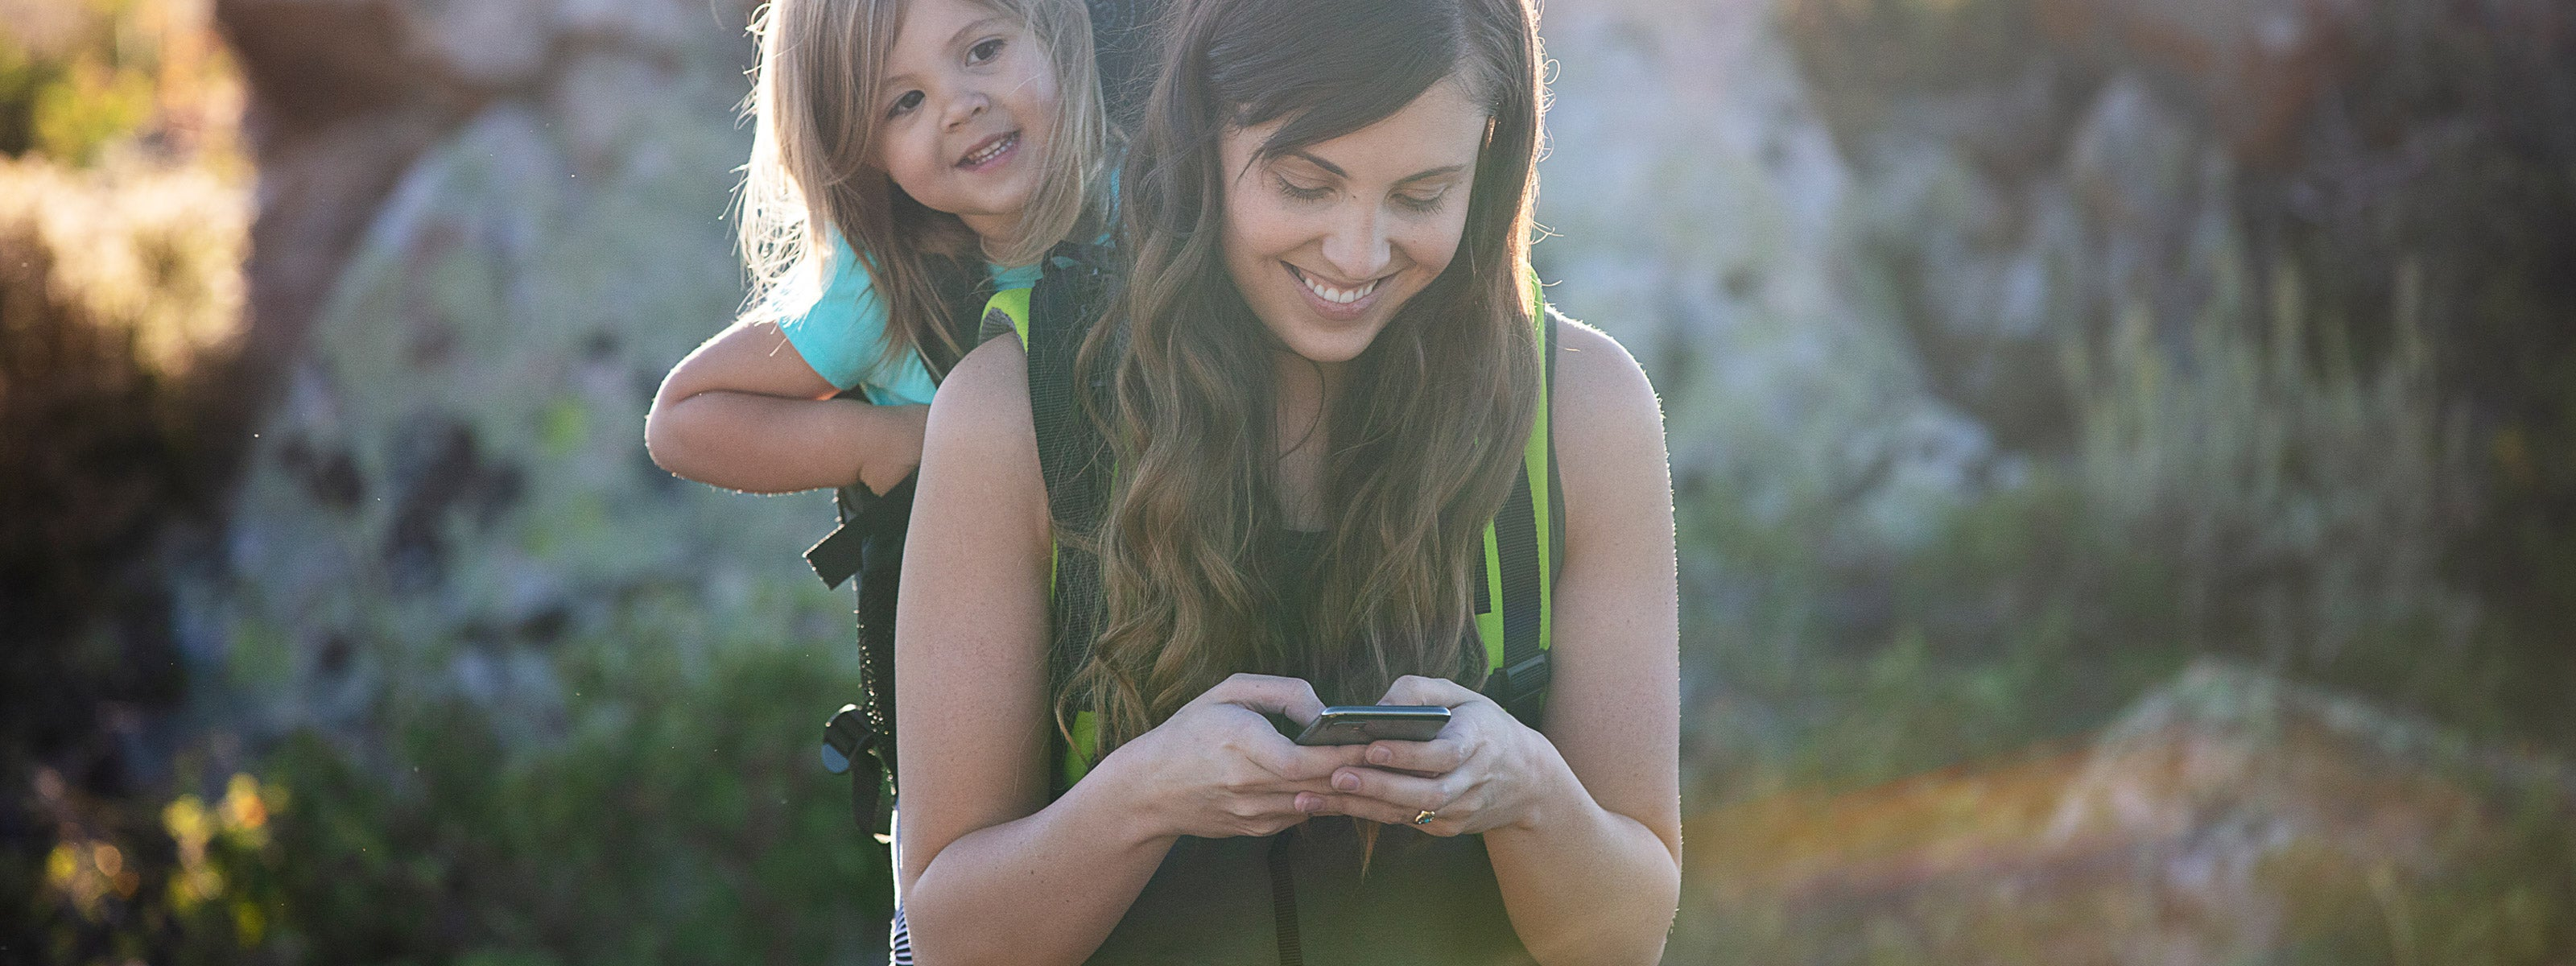 mother carrying daughter with iphone